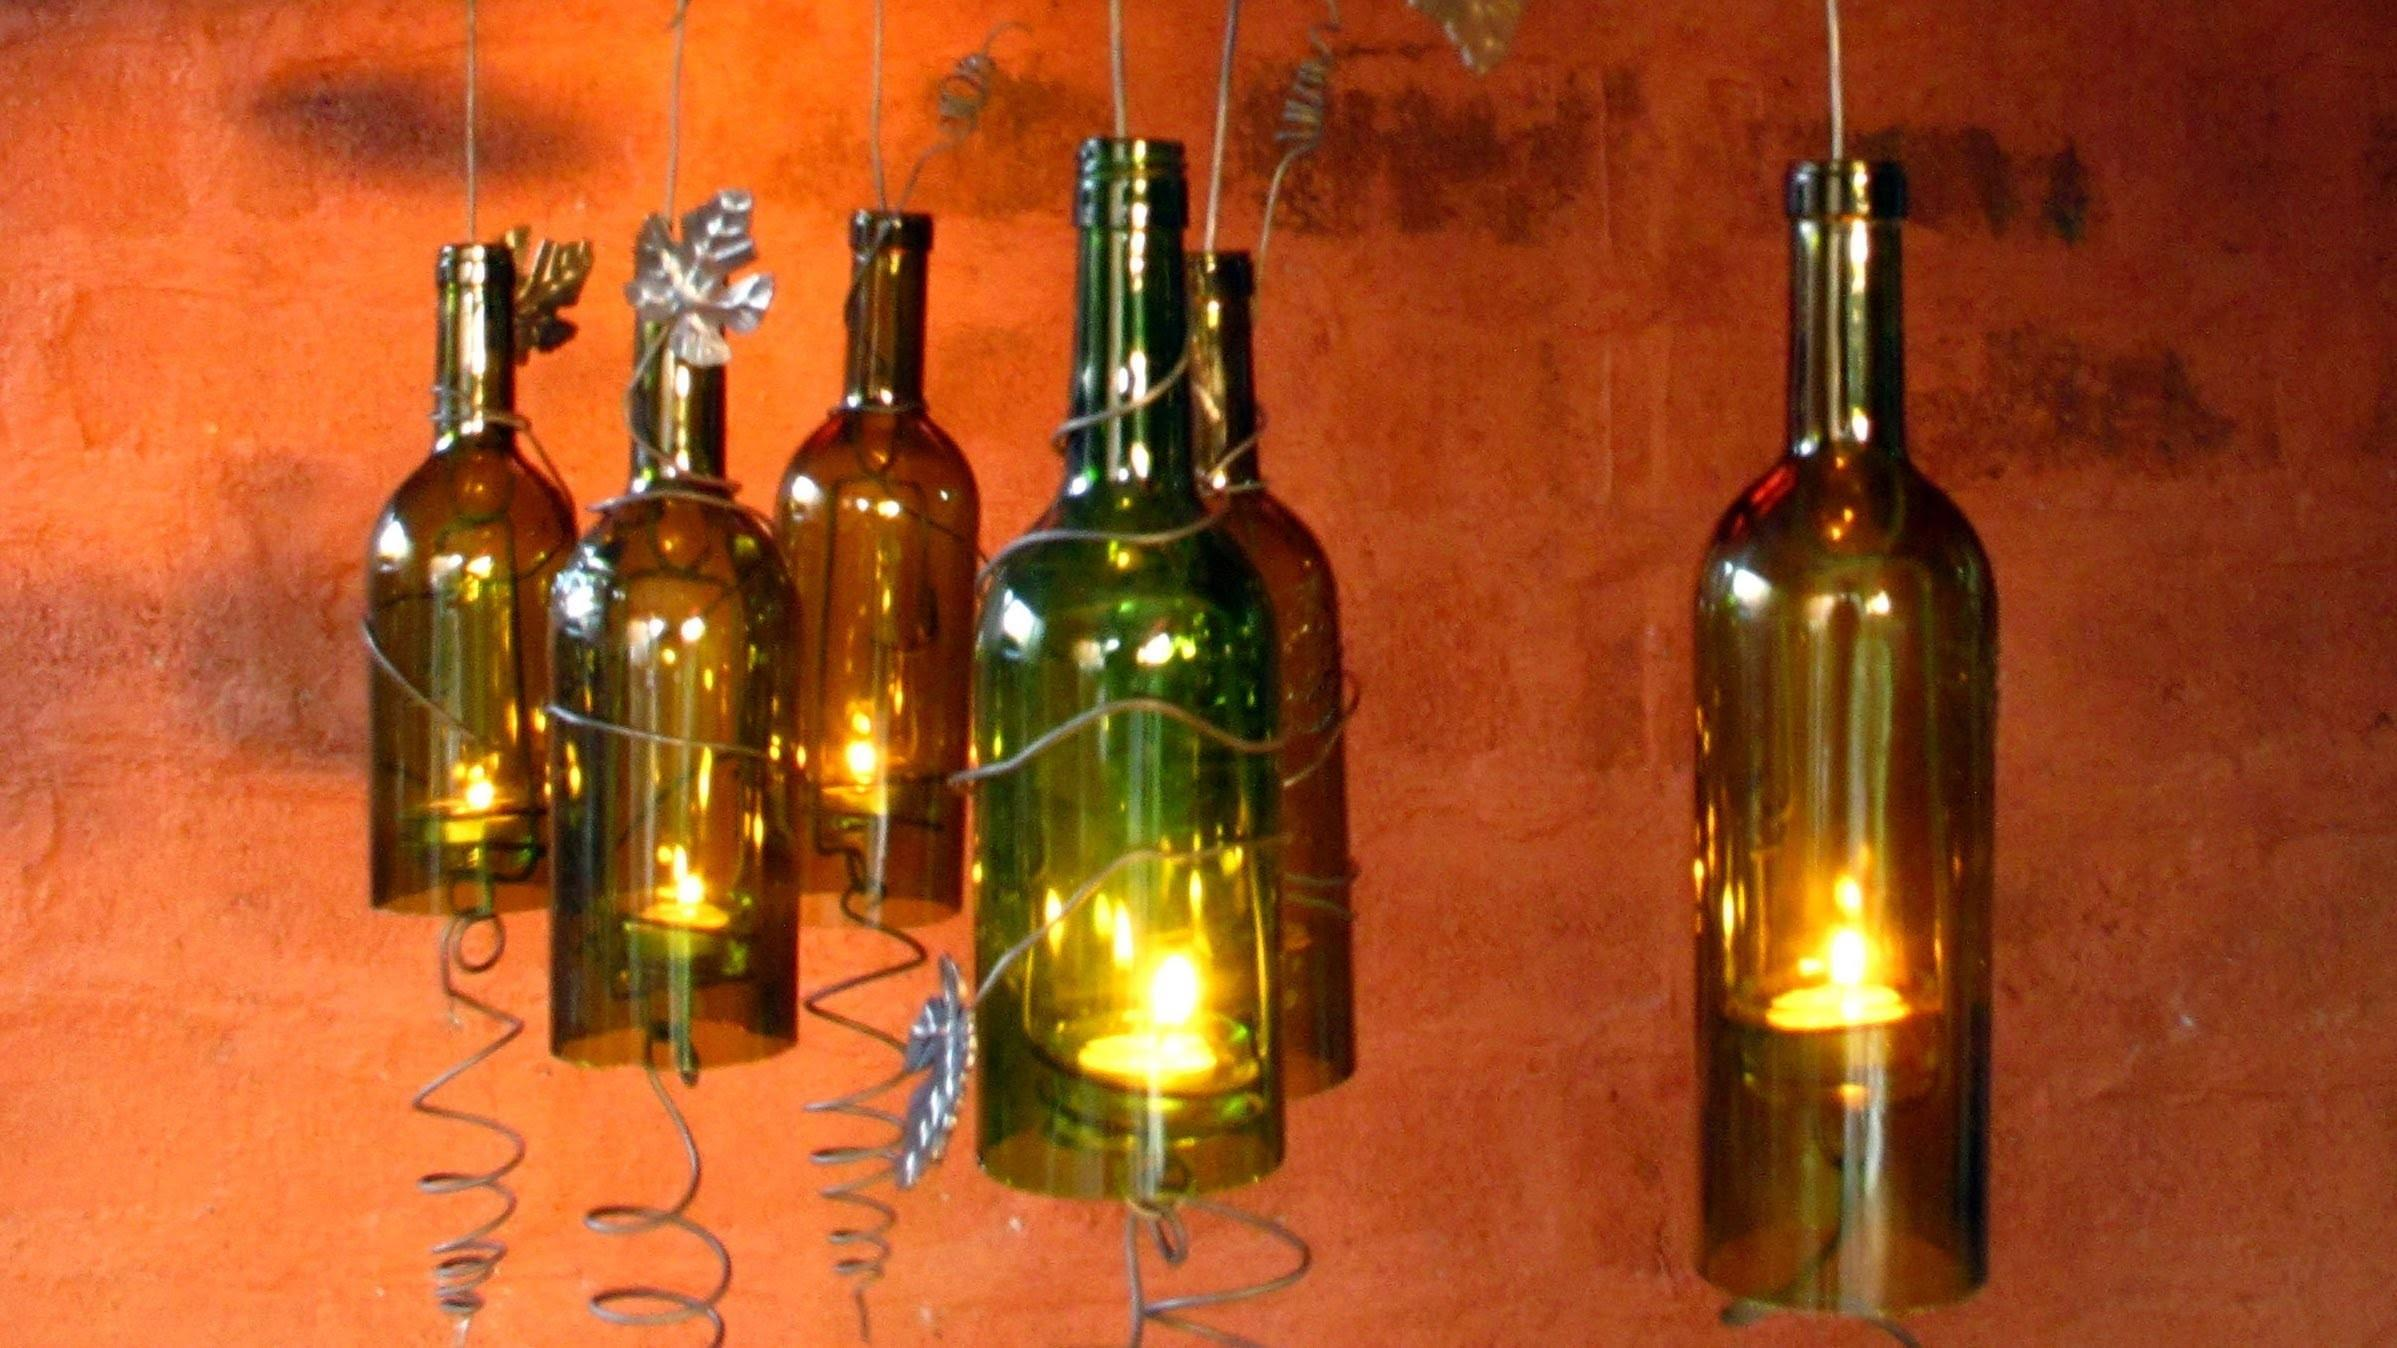 Recycled Wine Bottles Made Into Hurricane Candle Holder